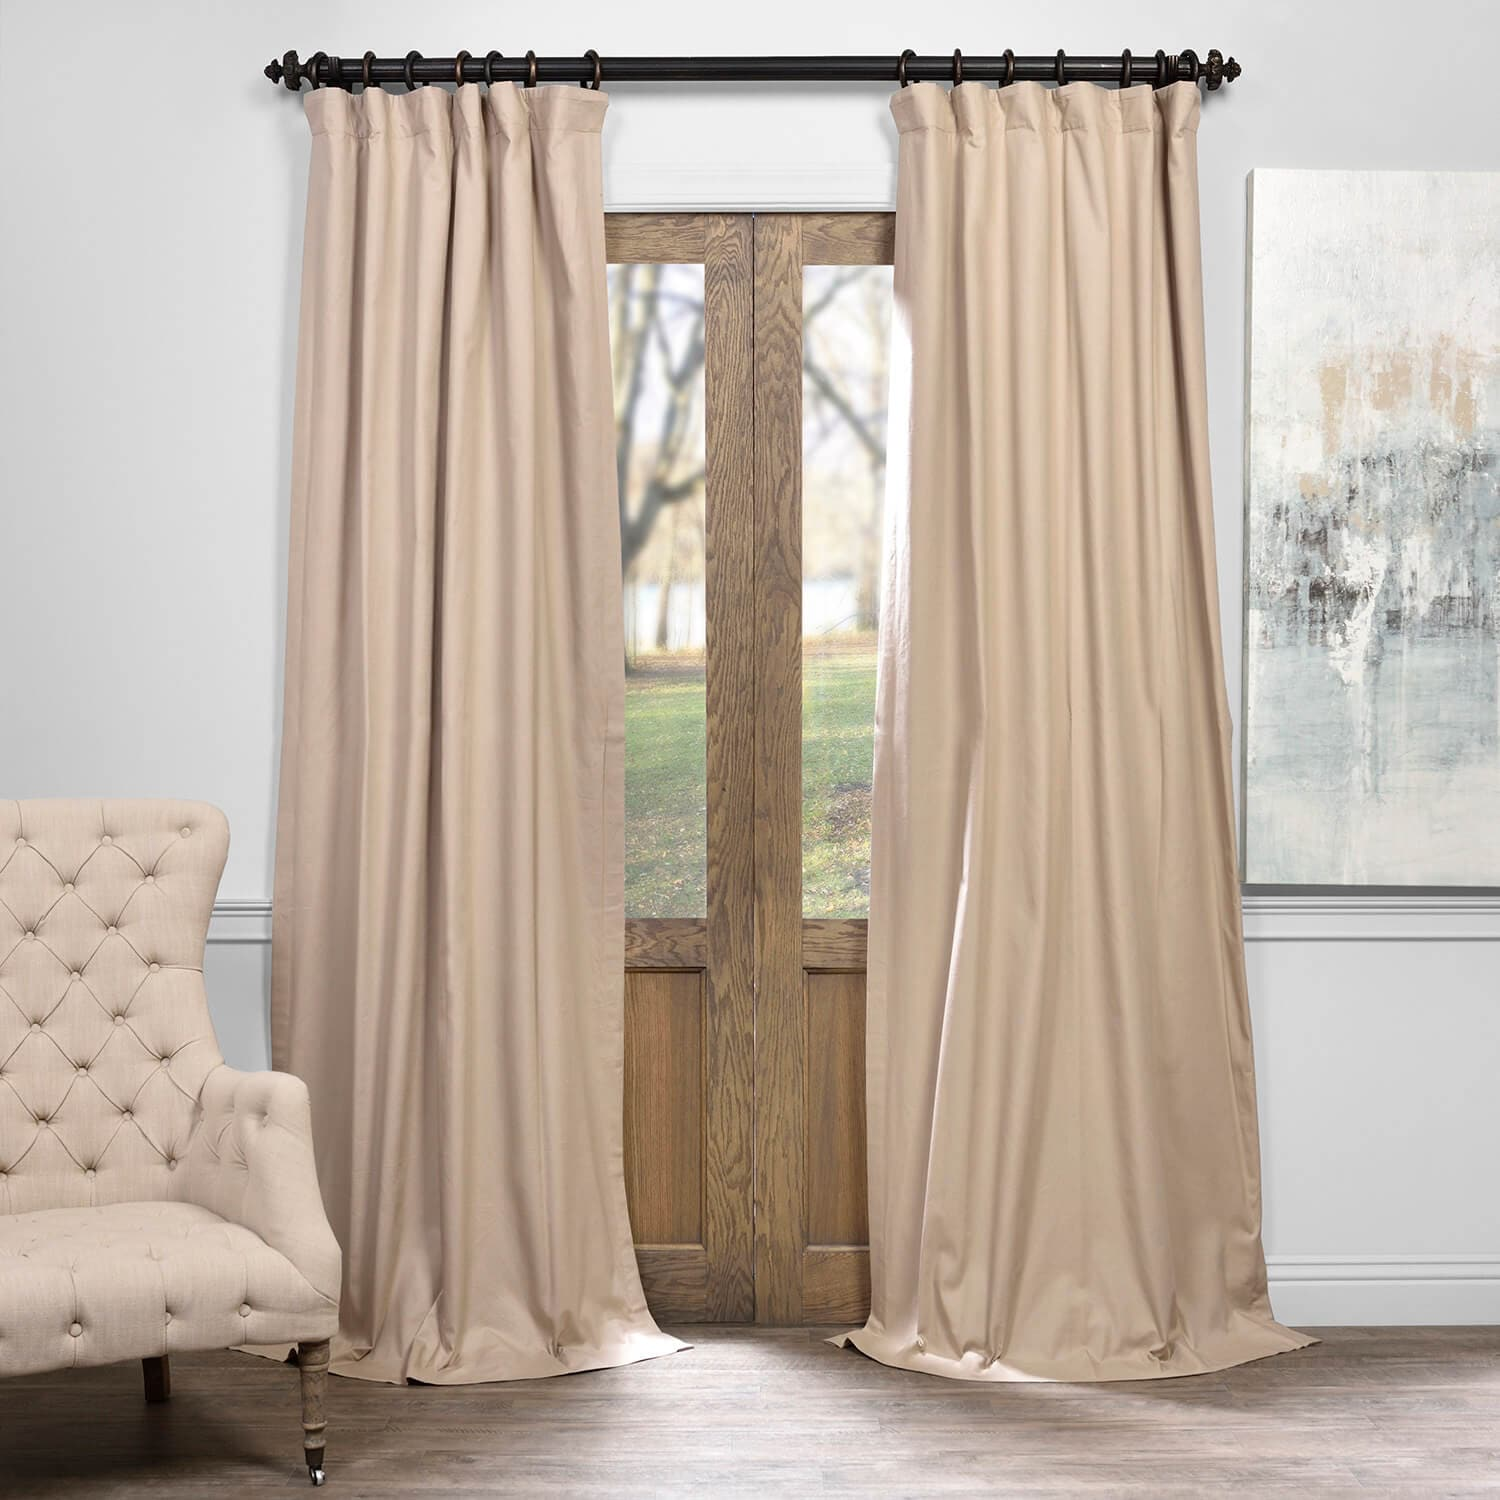 tan closeup set curtain modern theme upscaled drapes abstract curtains of wallpaper abstrak blackout bali gold